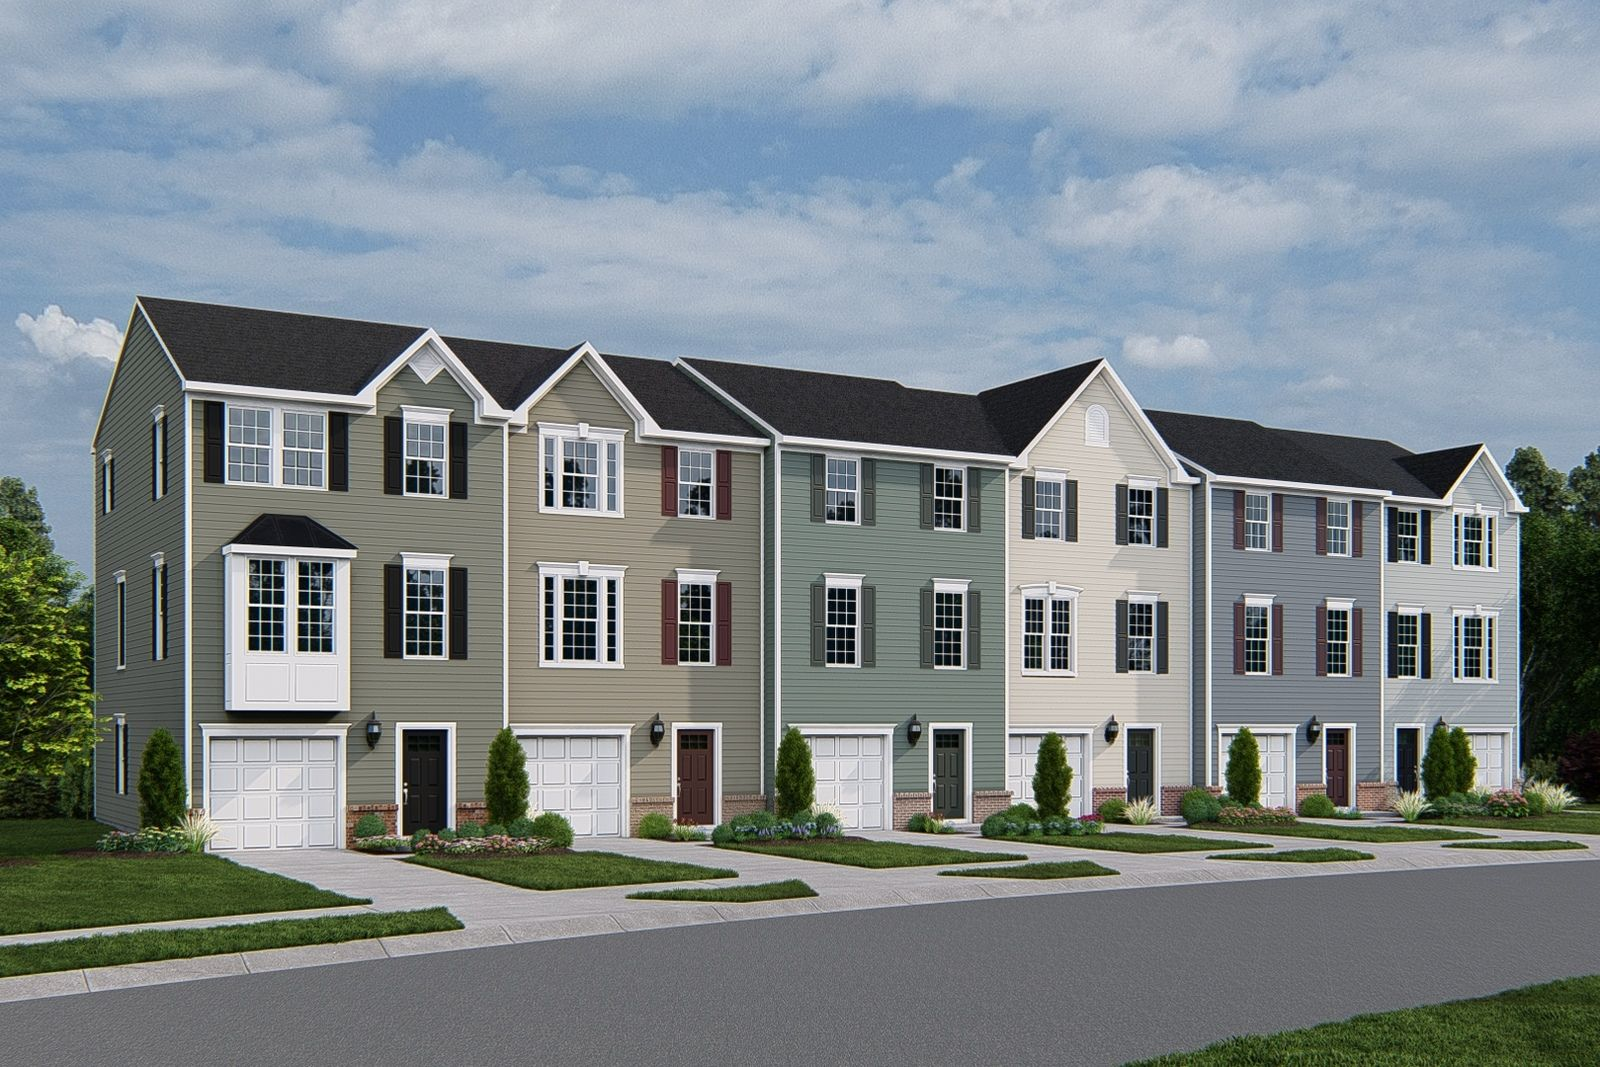 Affordable 3-story townhomes close to Duke, RTP & UNC. From the $270s:Lowest priced new 3-story townhomes with 1-car garages & wooded homesites,join the VIP list!